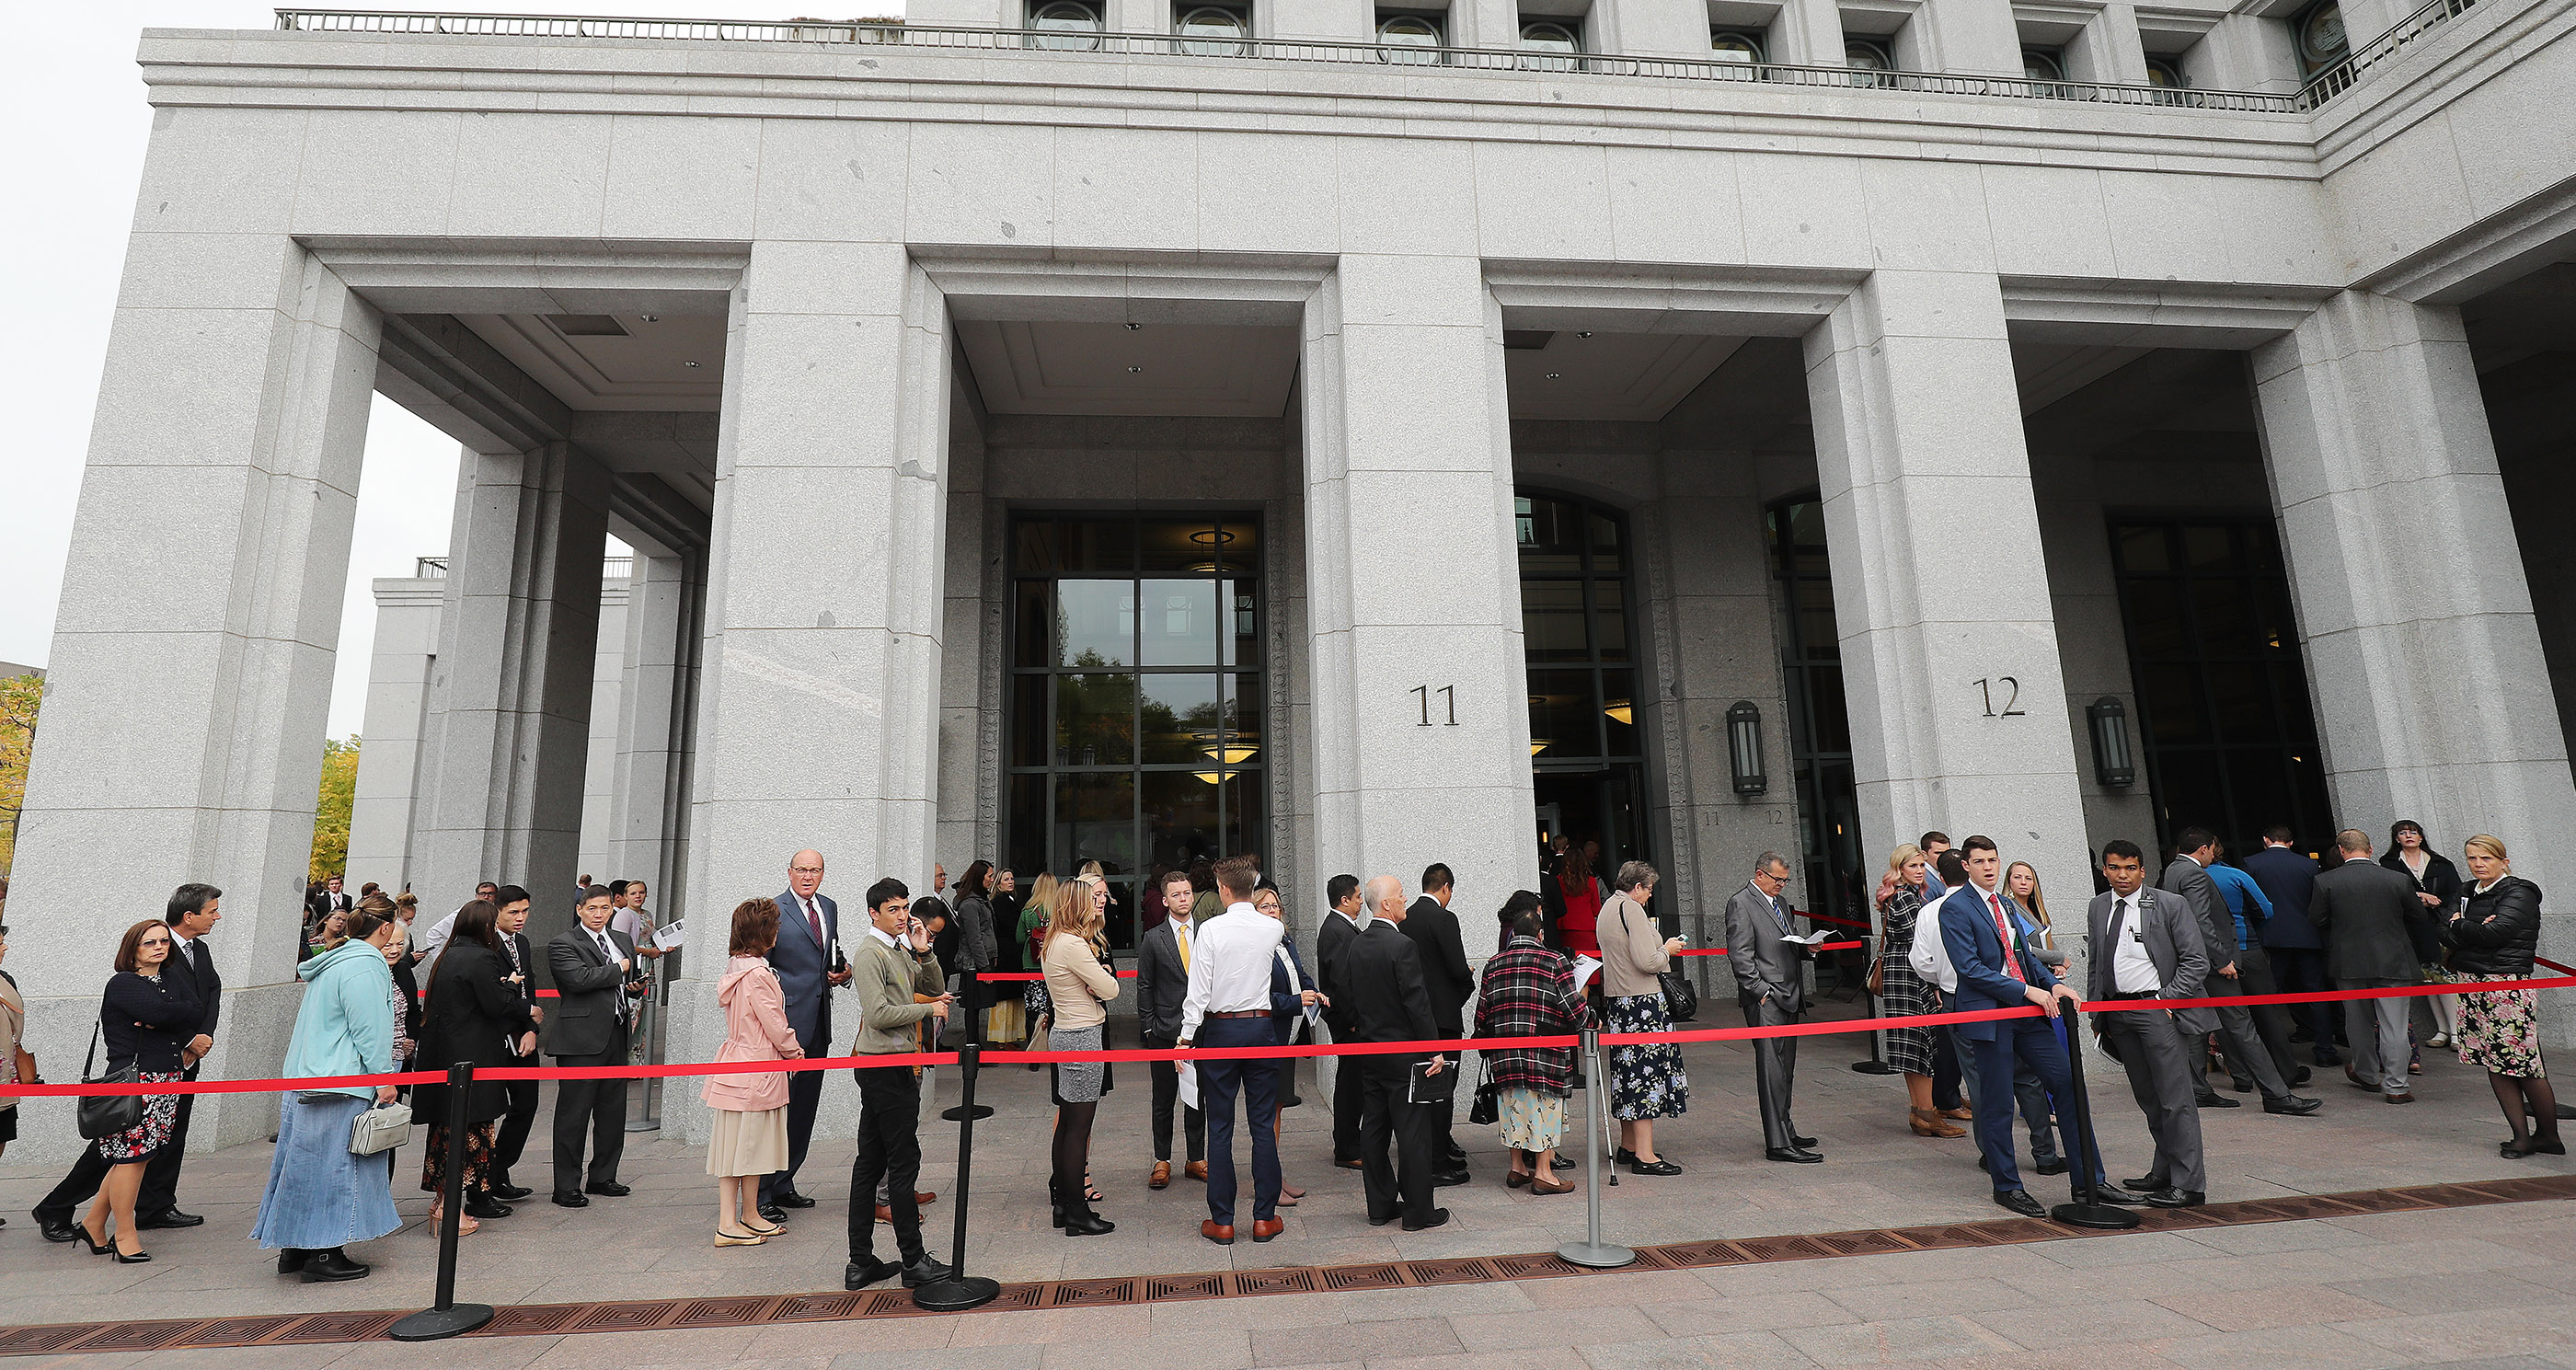 Attendees line up for the Saturday morning session of the 188th Semiannual General Conference of The Church of Jesus Christ of Latter-day Saints in the Conference Center in Salt Lake City on Saturday, Oct. 6, 2018.